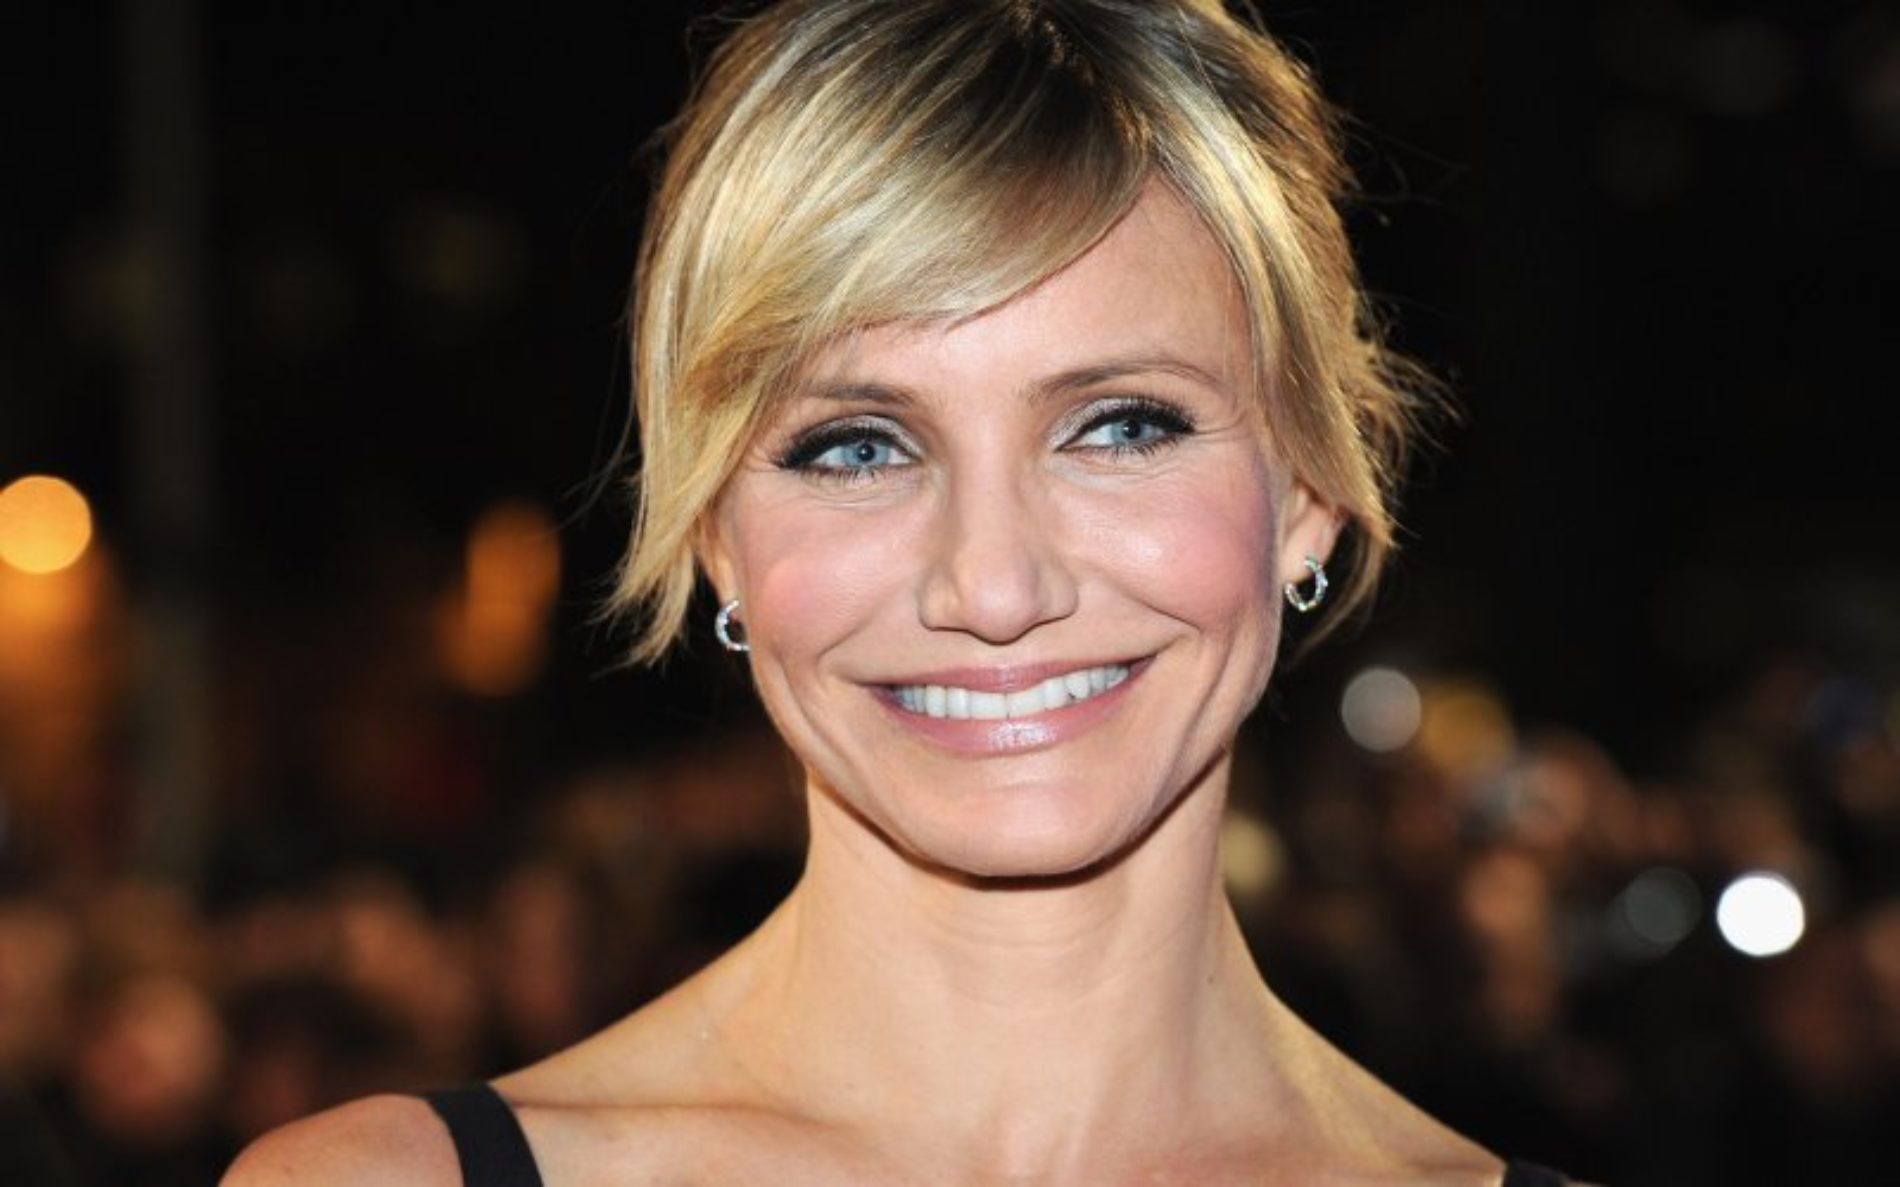 Cameron Diaz Is Not Looking For A Husband, Marriage Or Children